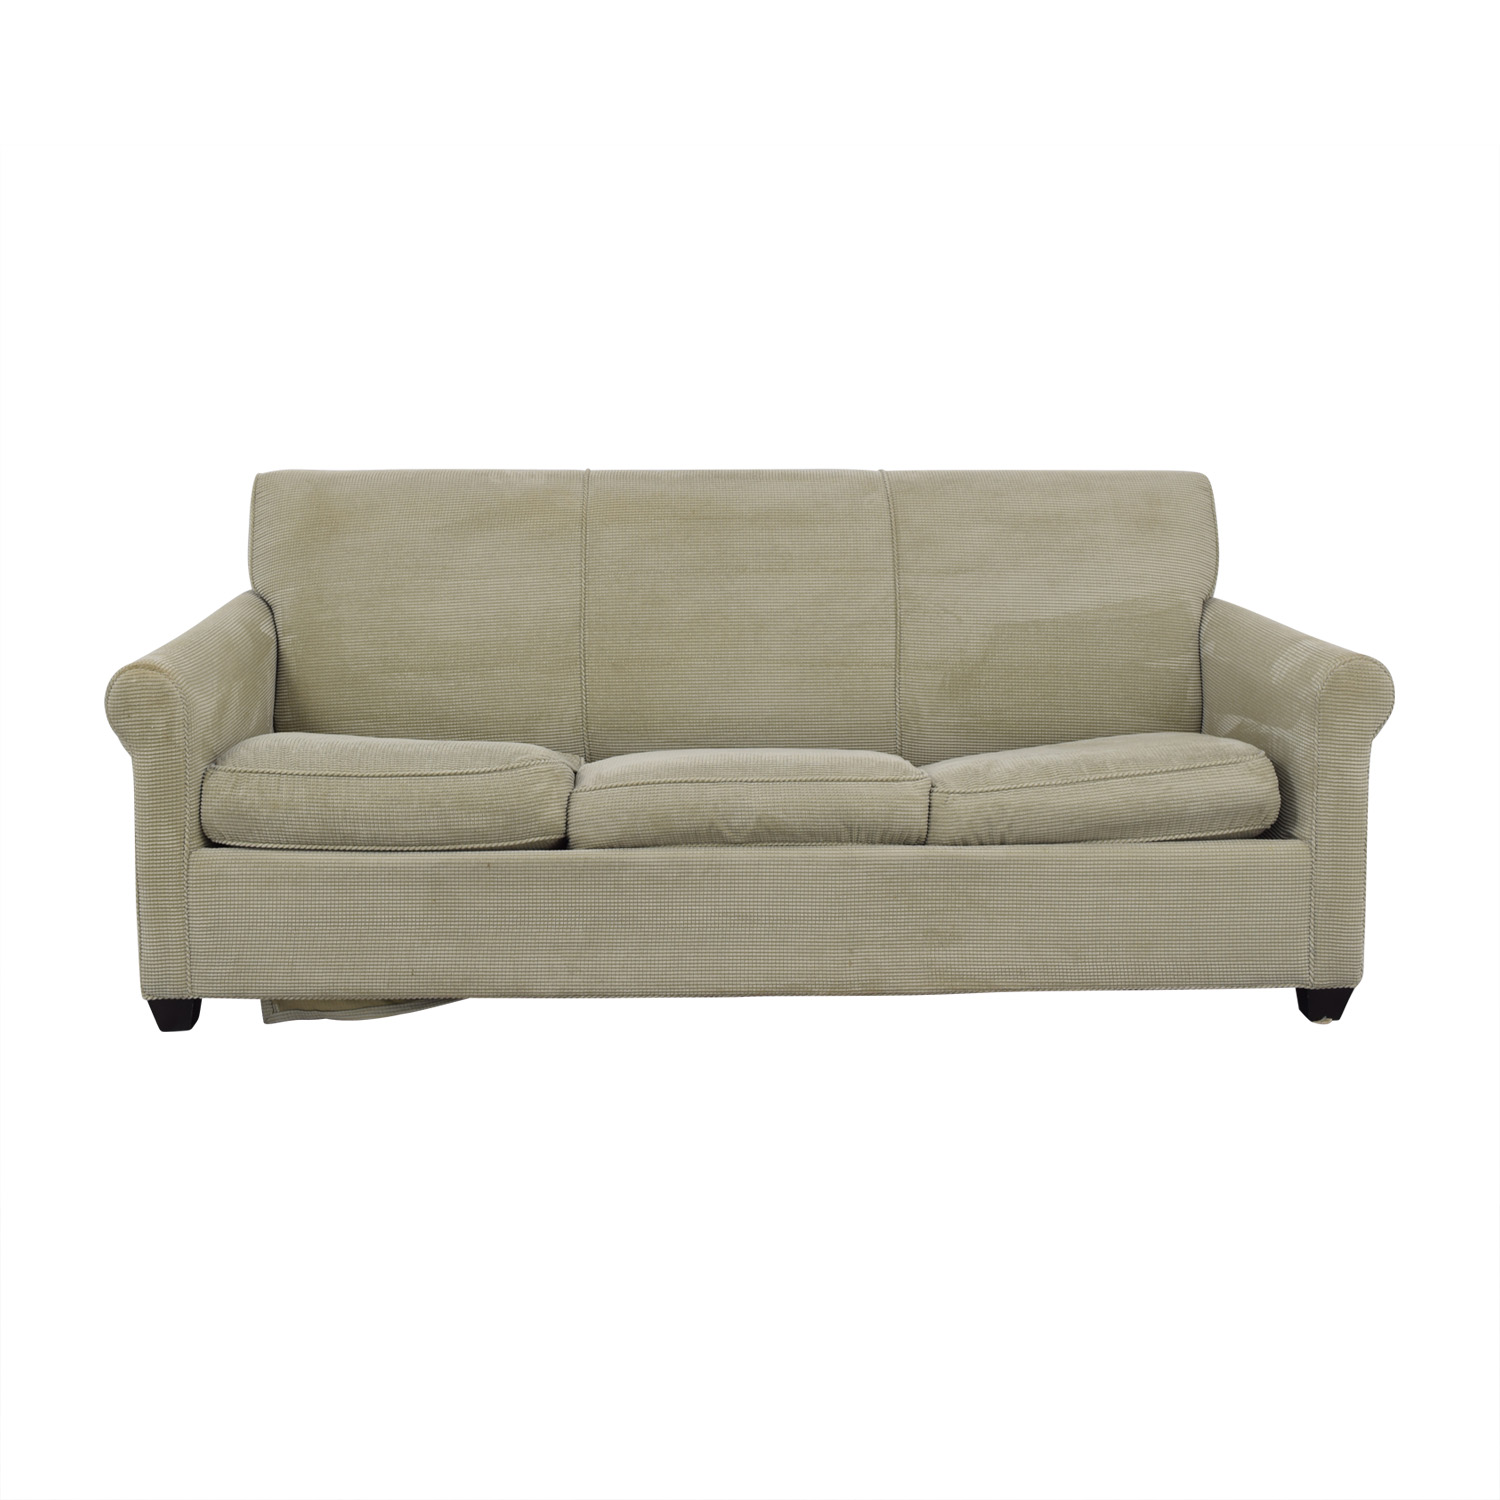 Crate & Barrel Crate & Barrel Gaines Full Sleeper Sofa